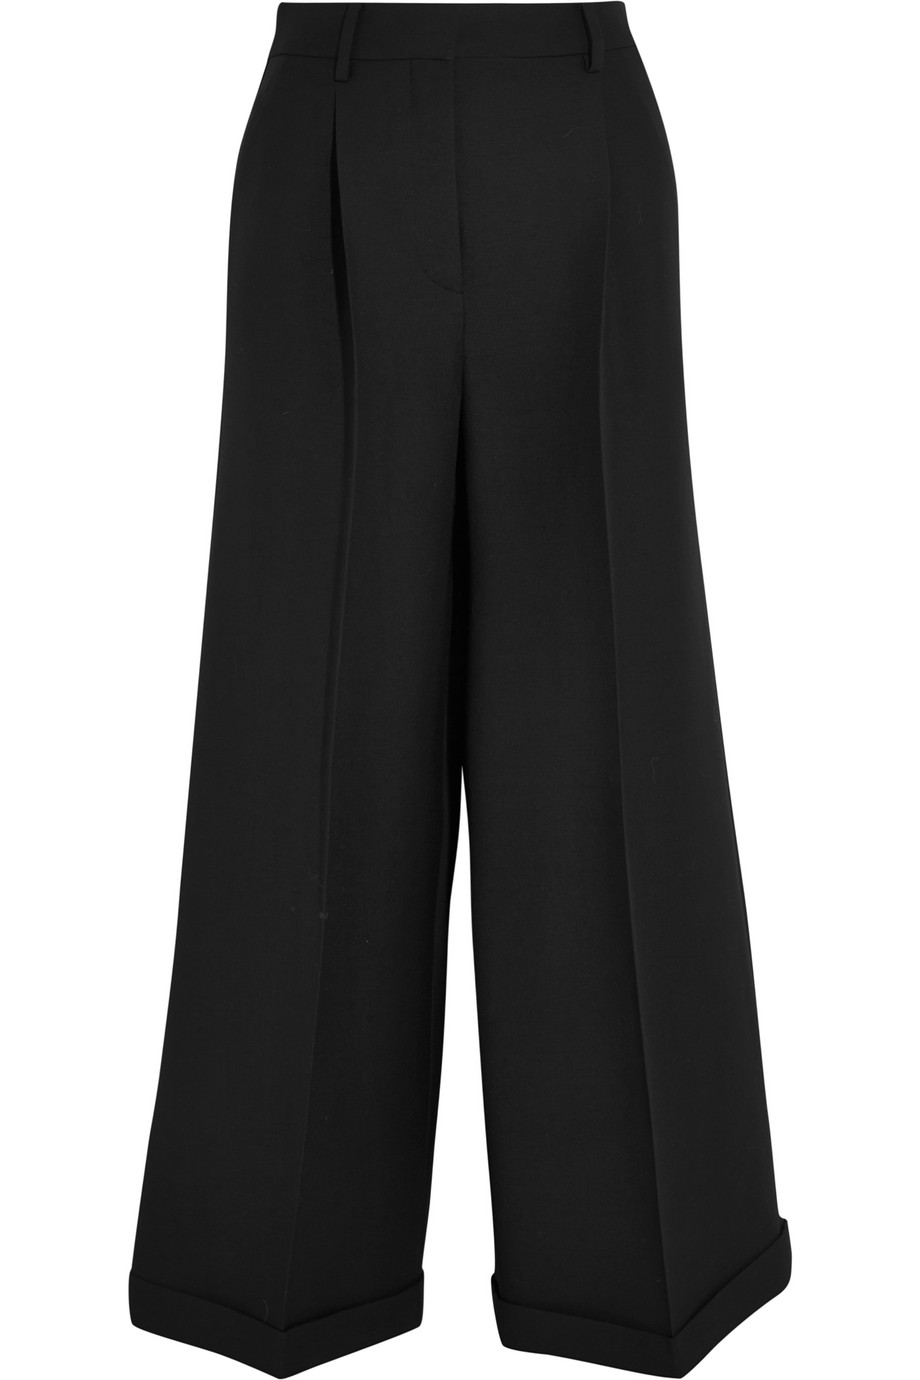 Valentino Wool and Silk-Blend Wide-Leg Cropped Pants, Black, Women's, Size: 40